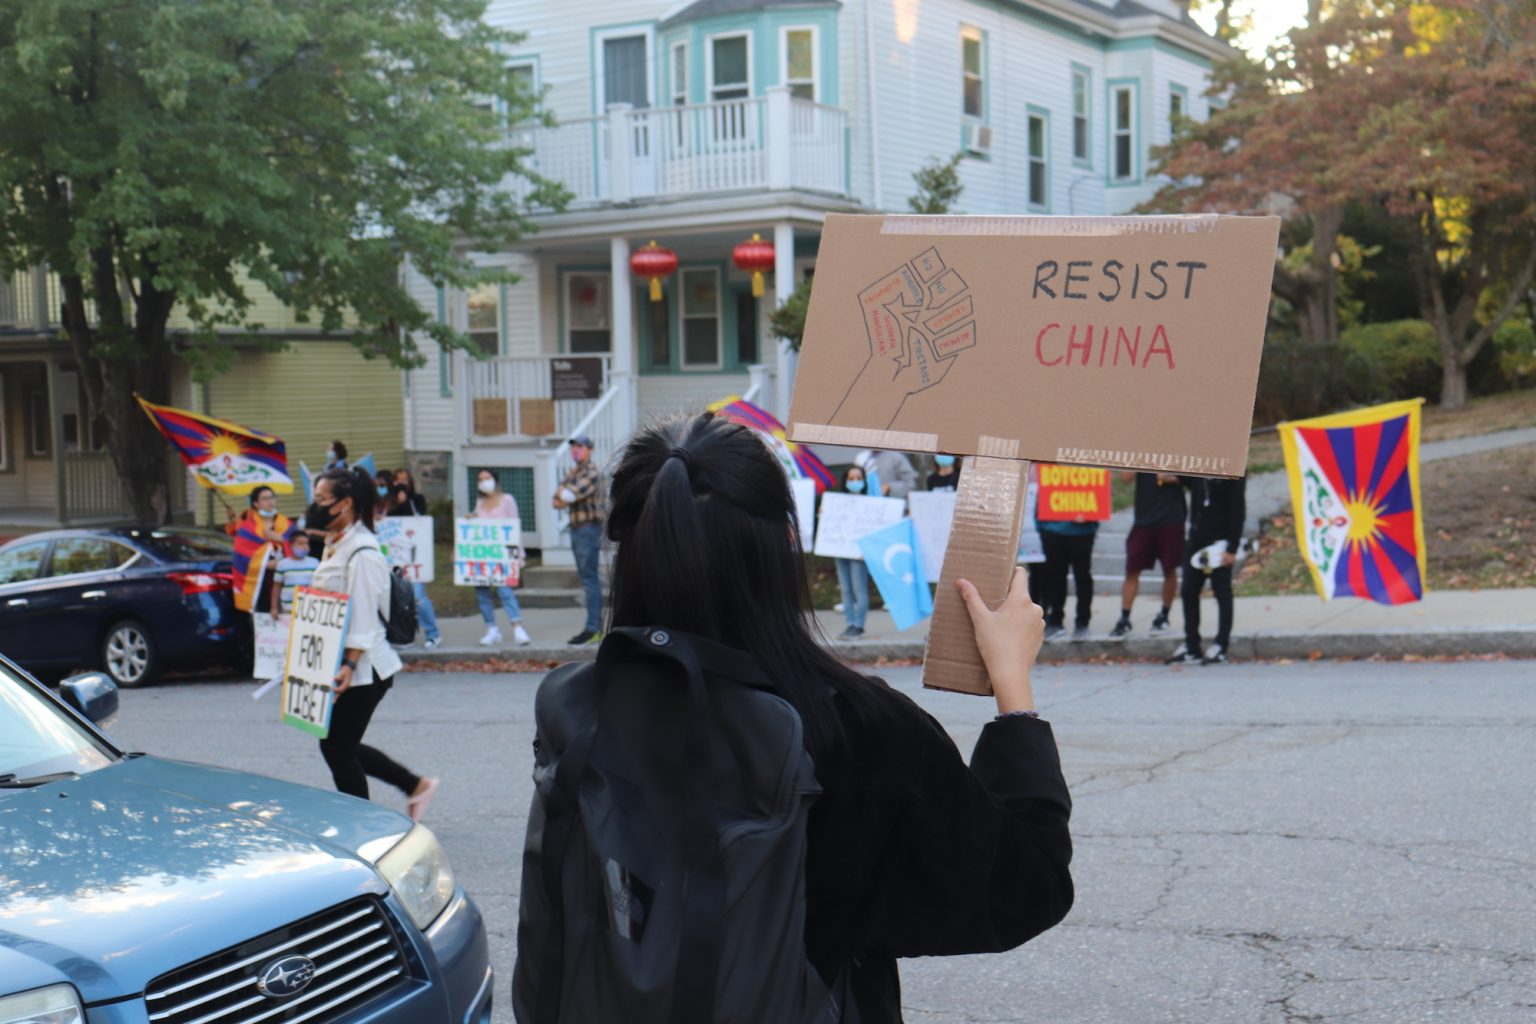 Tufts Daily | Demonstrators protest Confucius Institute at Tufts, claim it advances Chinese government's agenda